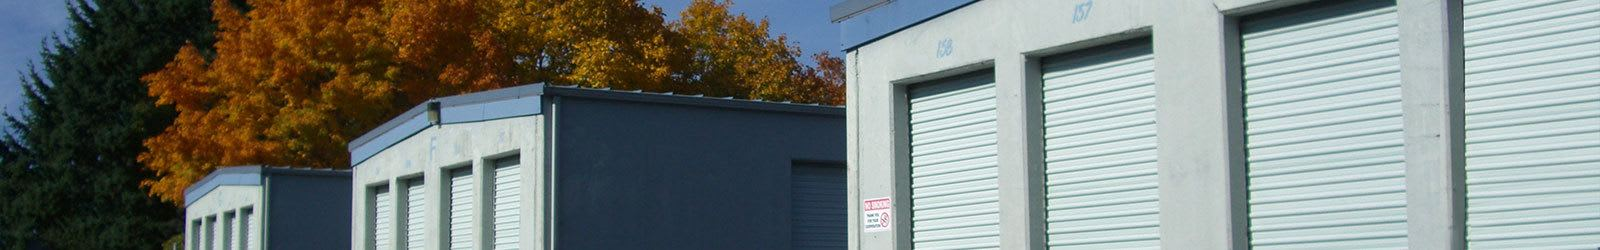 Storage Unit Size guide for self storage in Vancouver, WA